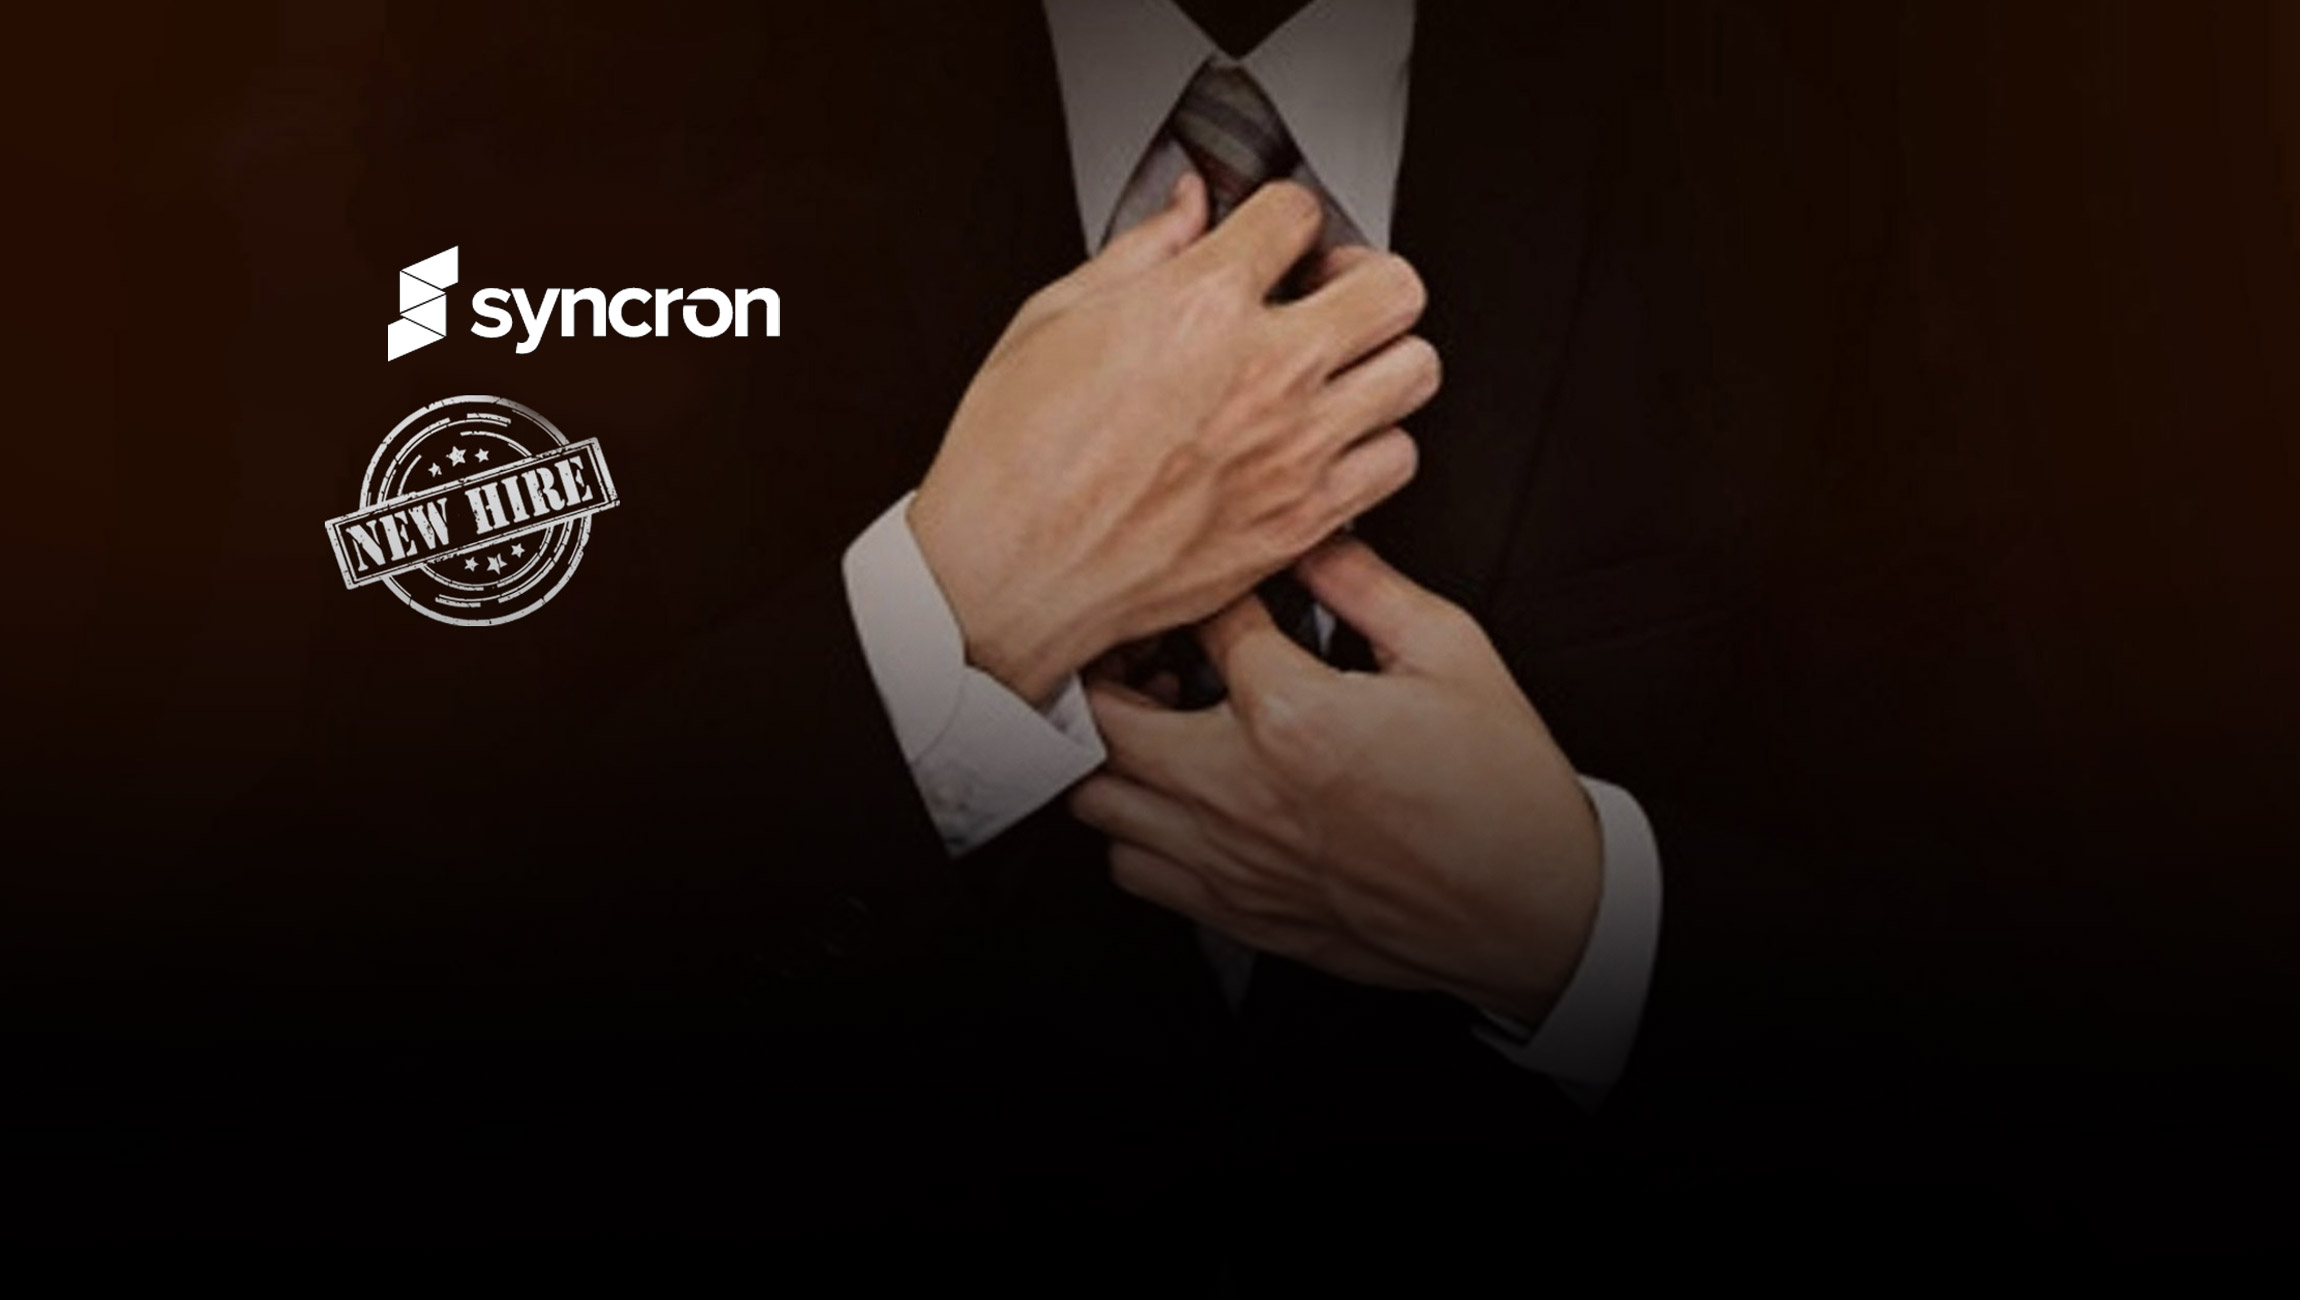 Syncron Announces Friedrich Neumeyer to Become CEO